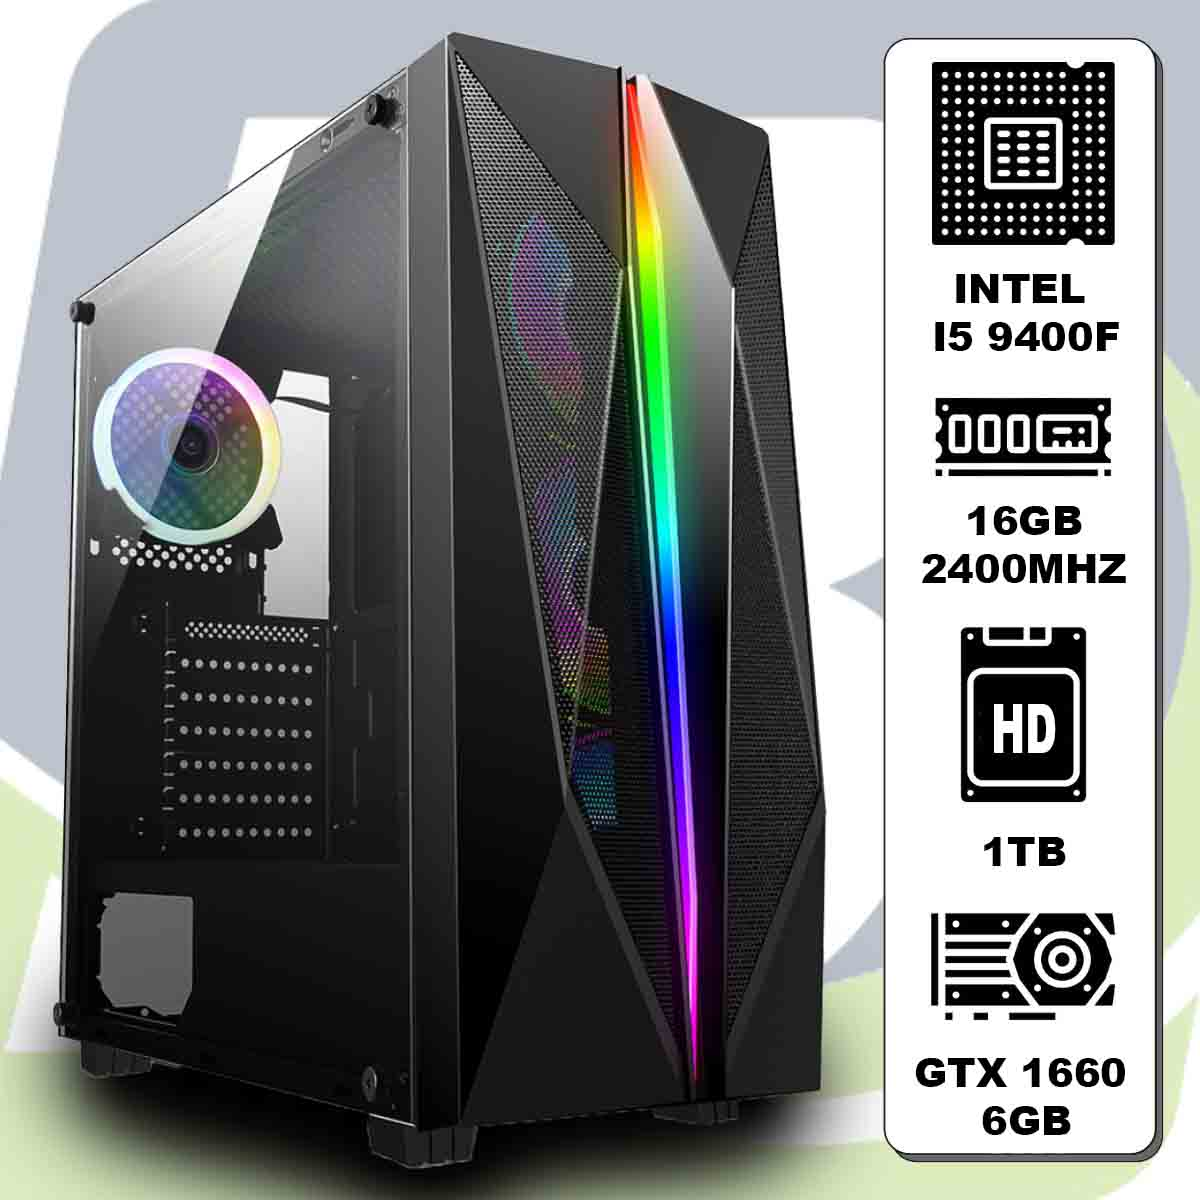 Computador Kit Gamer I5 9400f / 16gb / Hd 1000gb / Gtx 1660 6gb